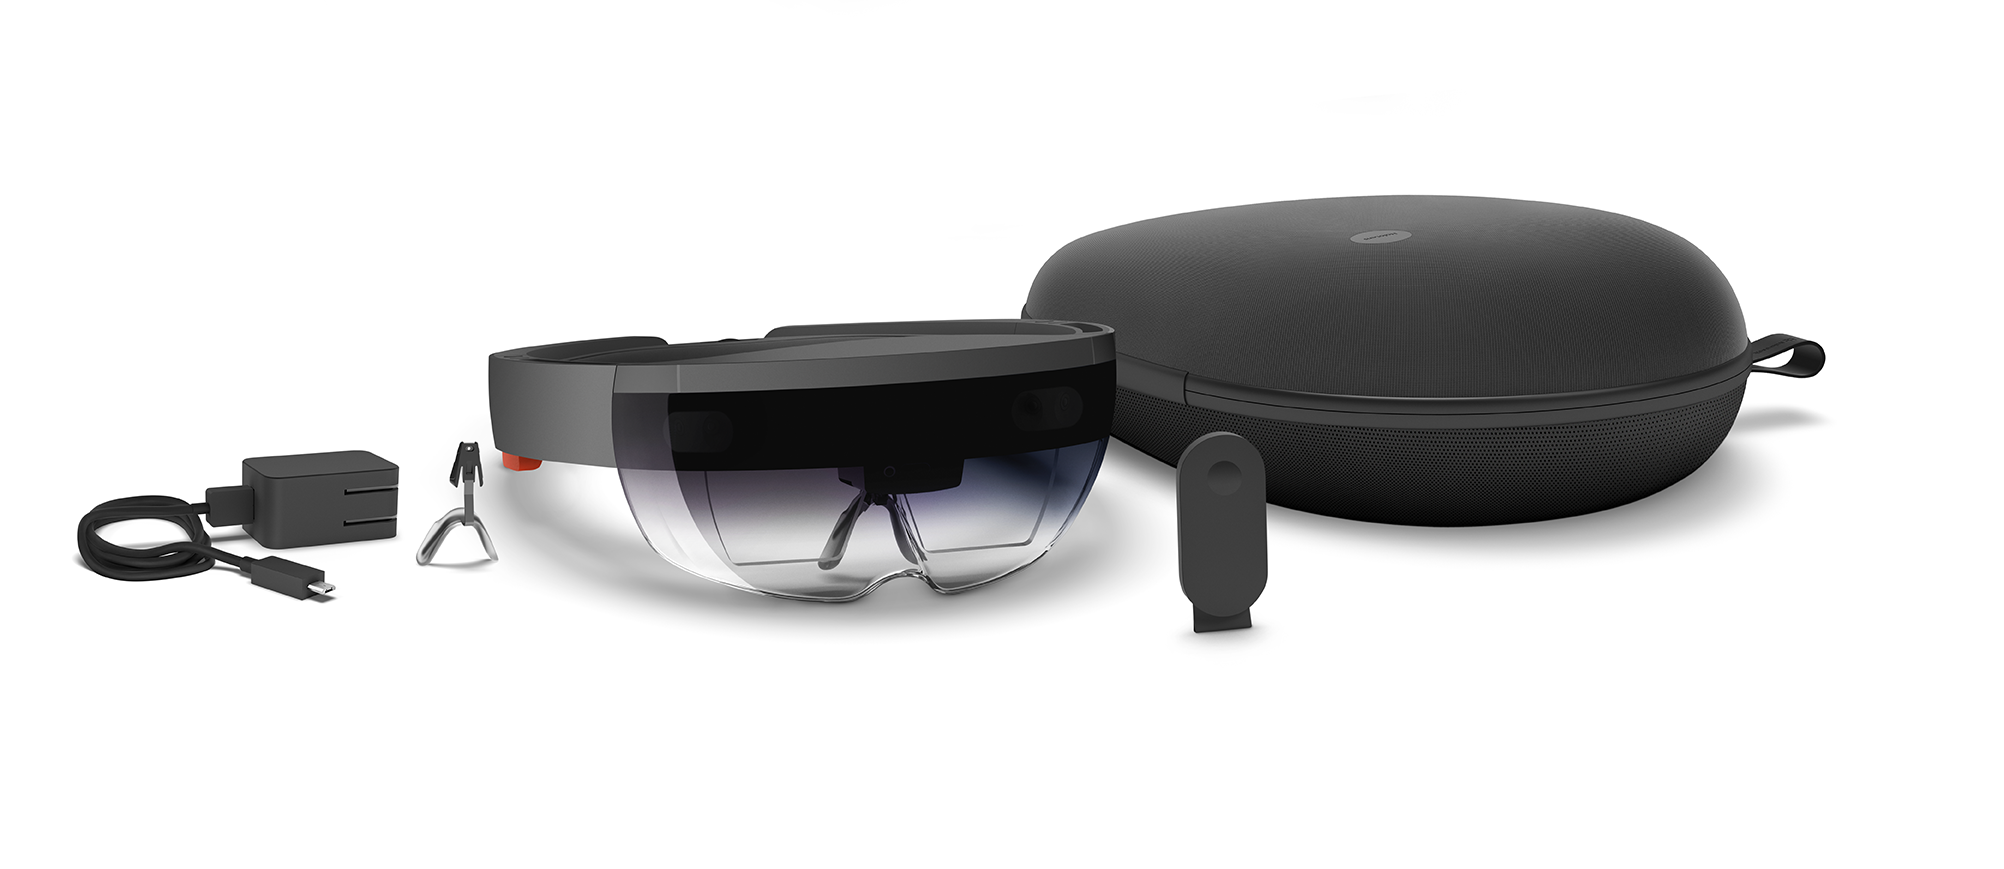 The full HoloLens Development Edition kit.